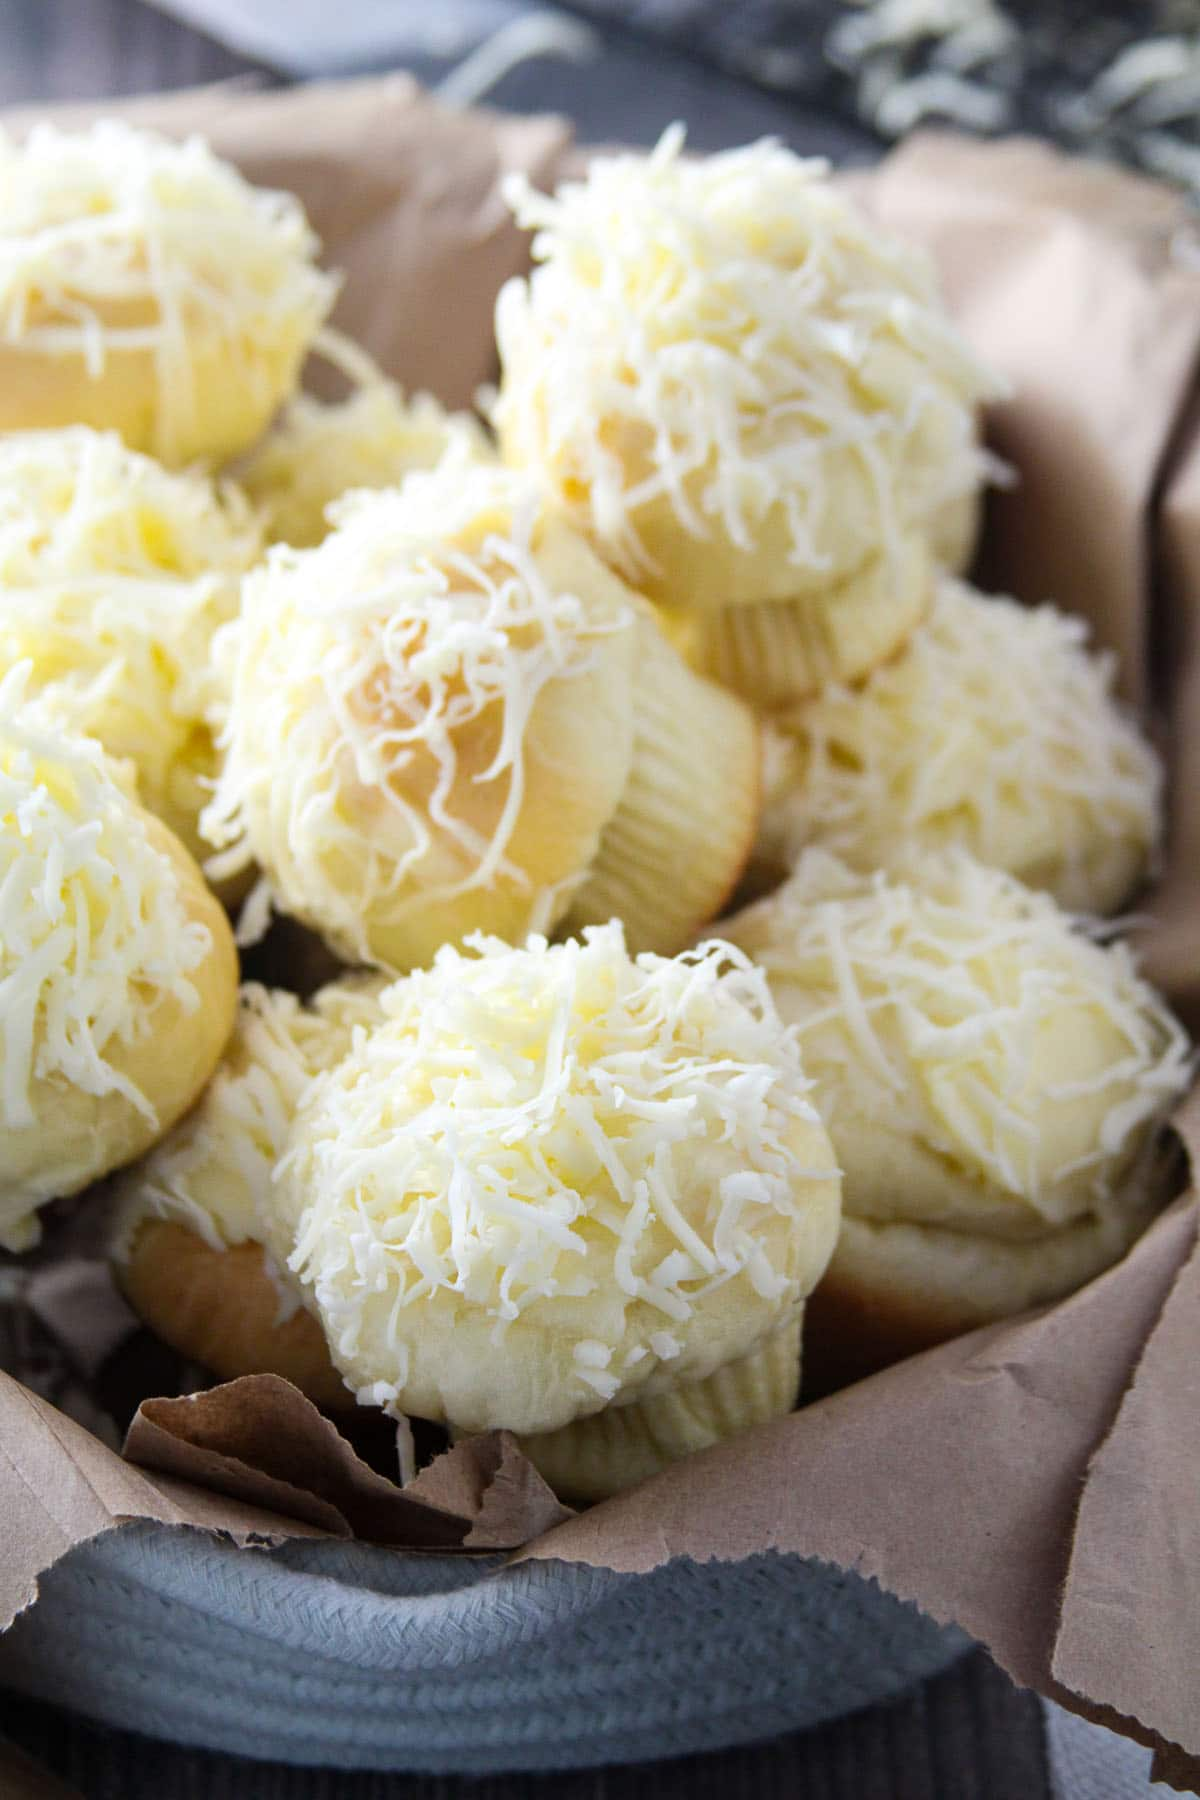 The ensaymada on a bread basket.